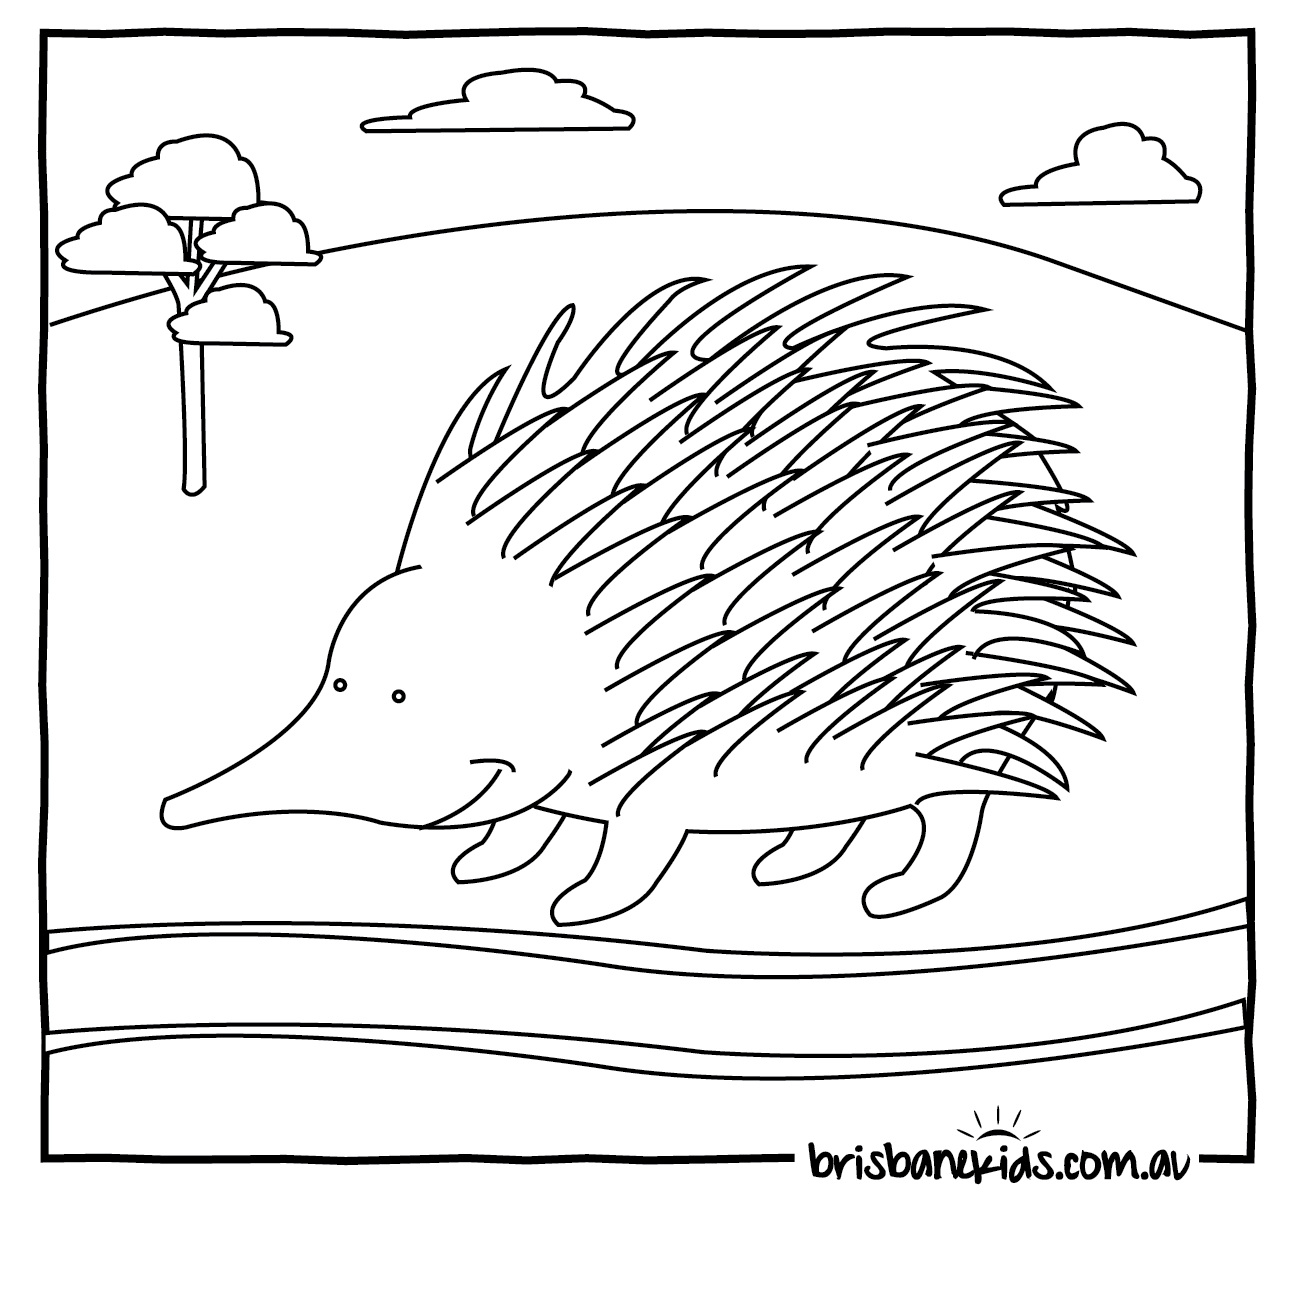 Echidna Coloring Download Echidna Coloring For Free